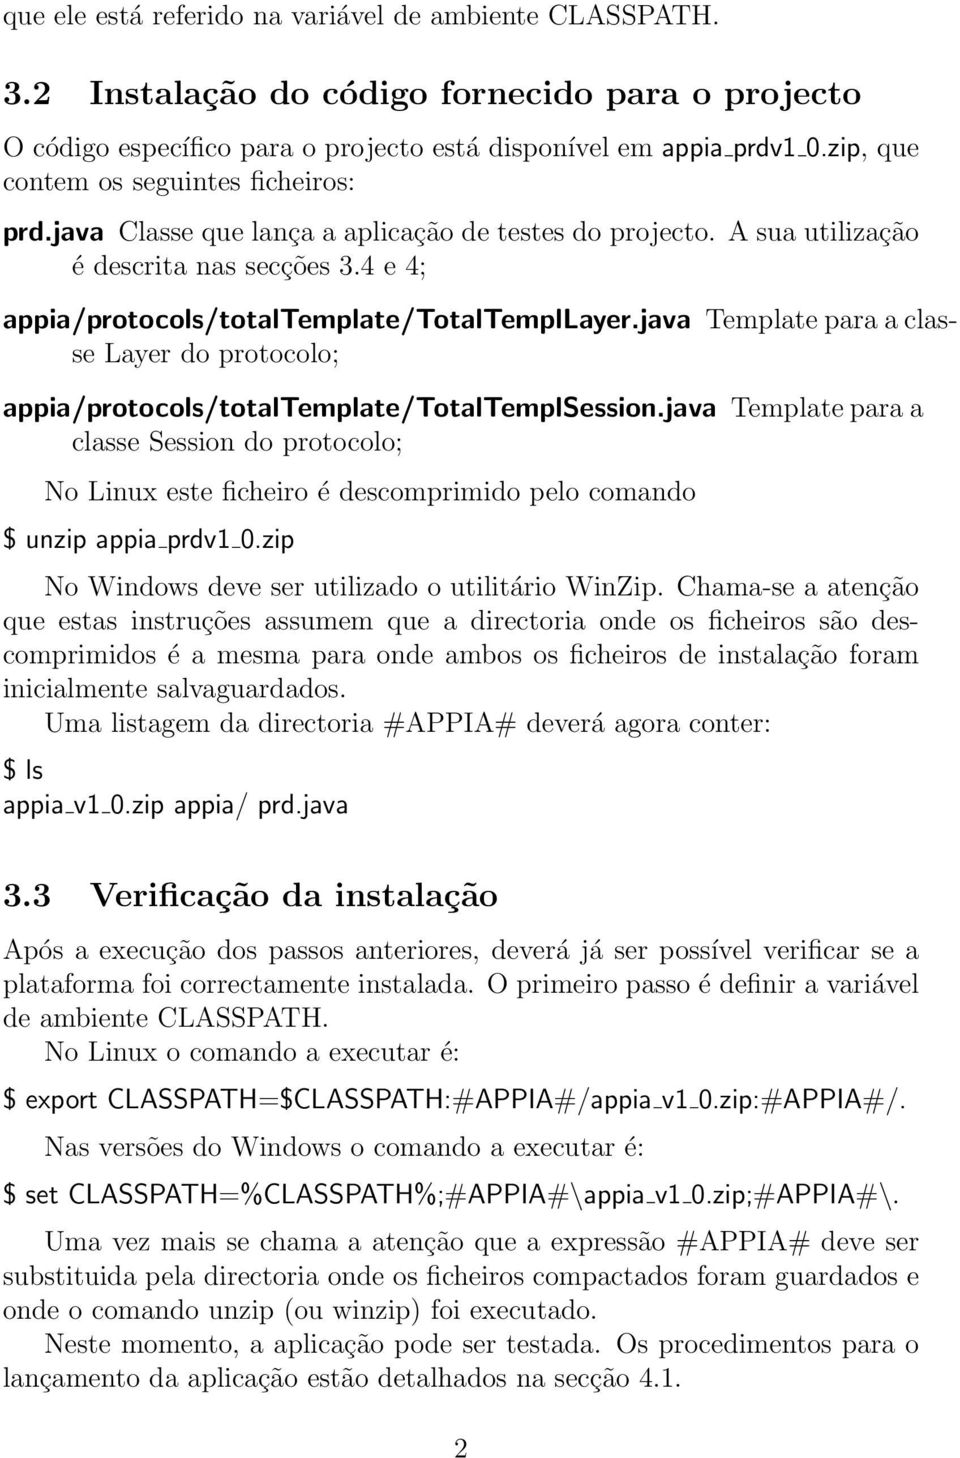 java Template para a classe Layer do protocolo; appia/protocols/totaltemplate/totaltemplsession.